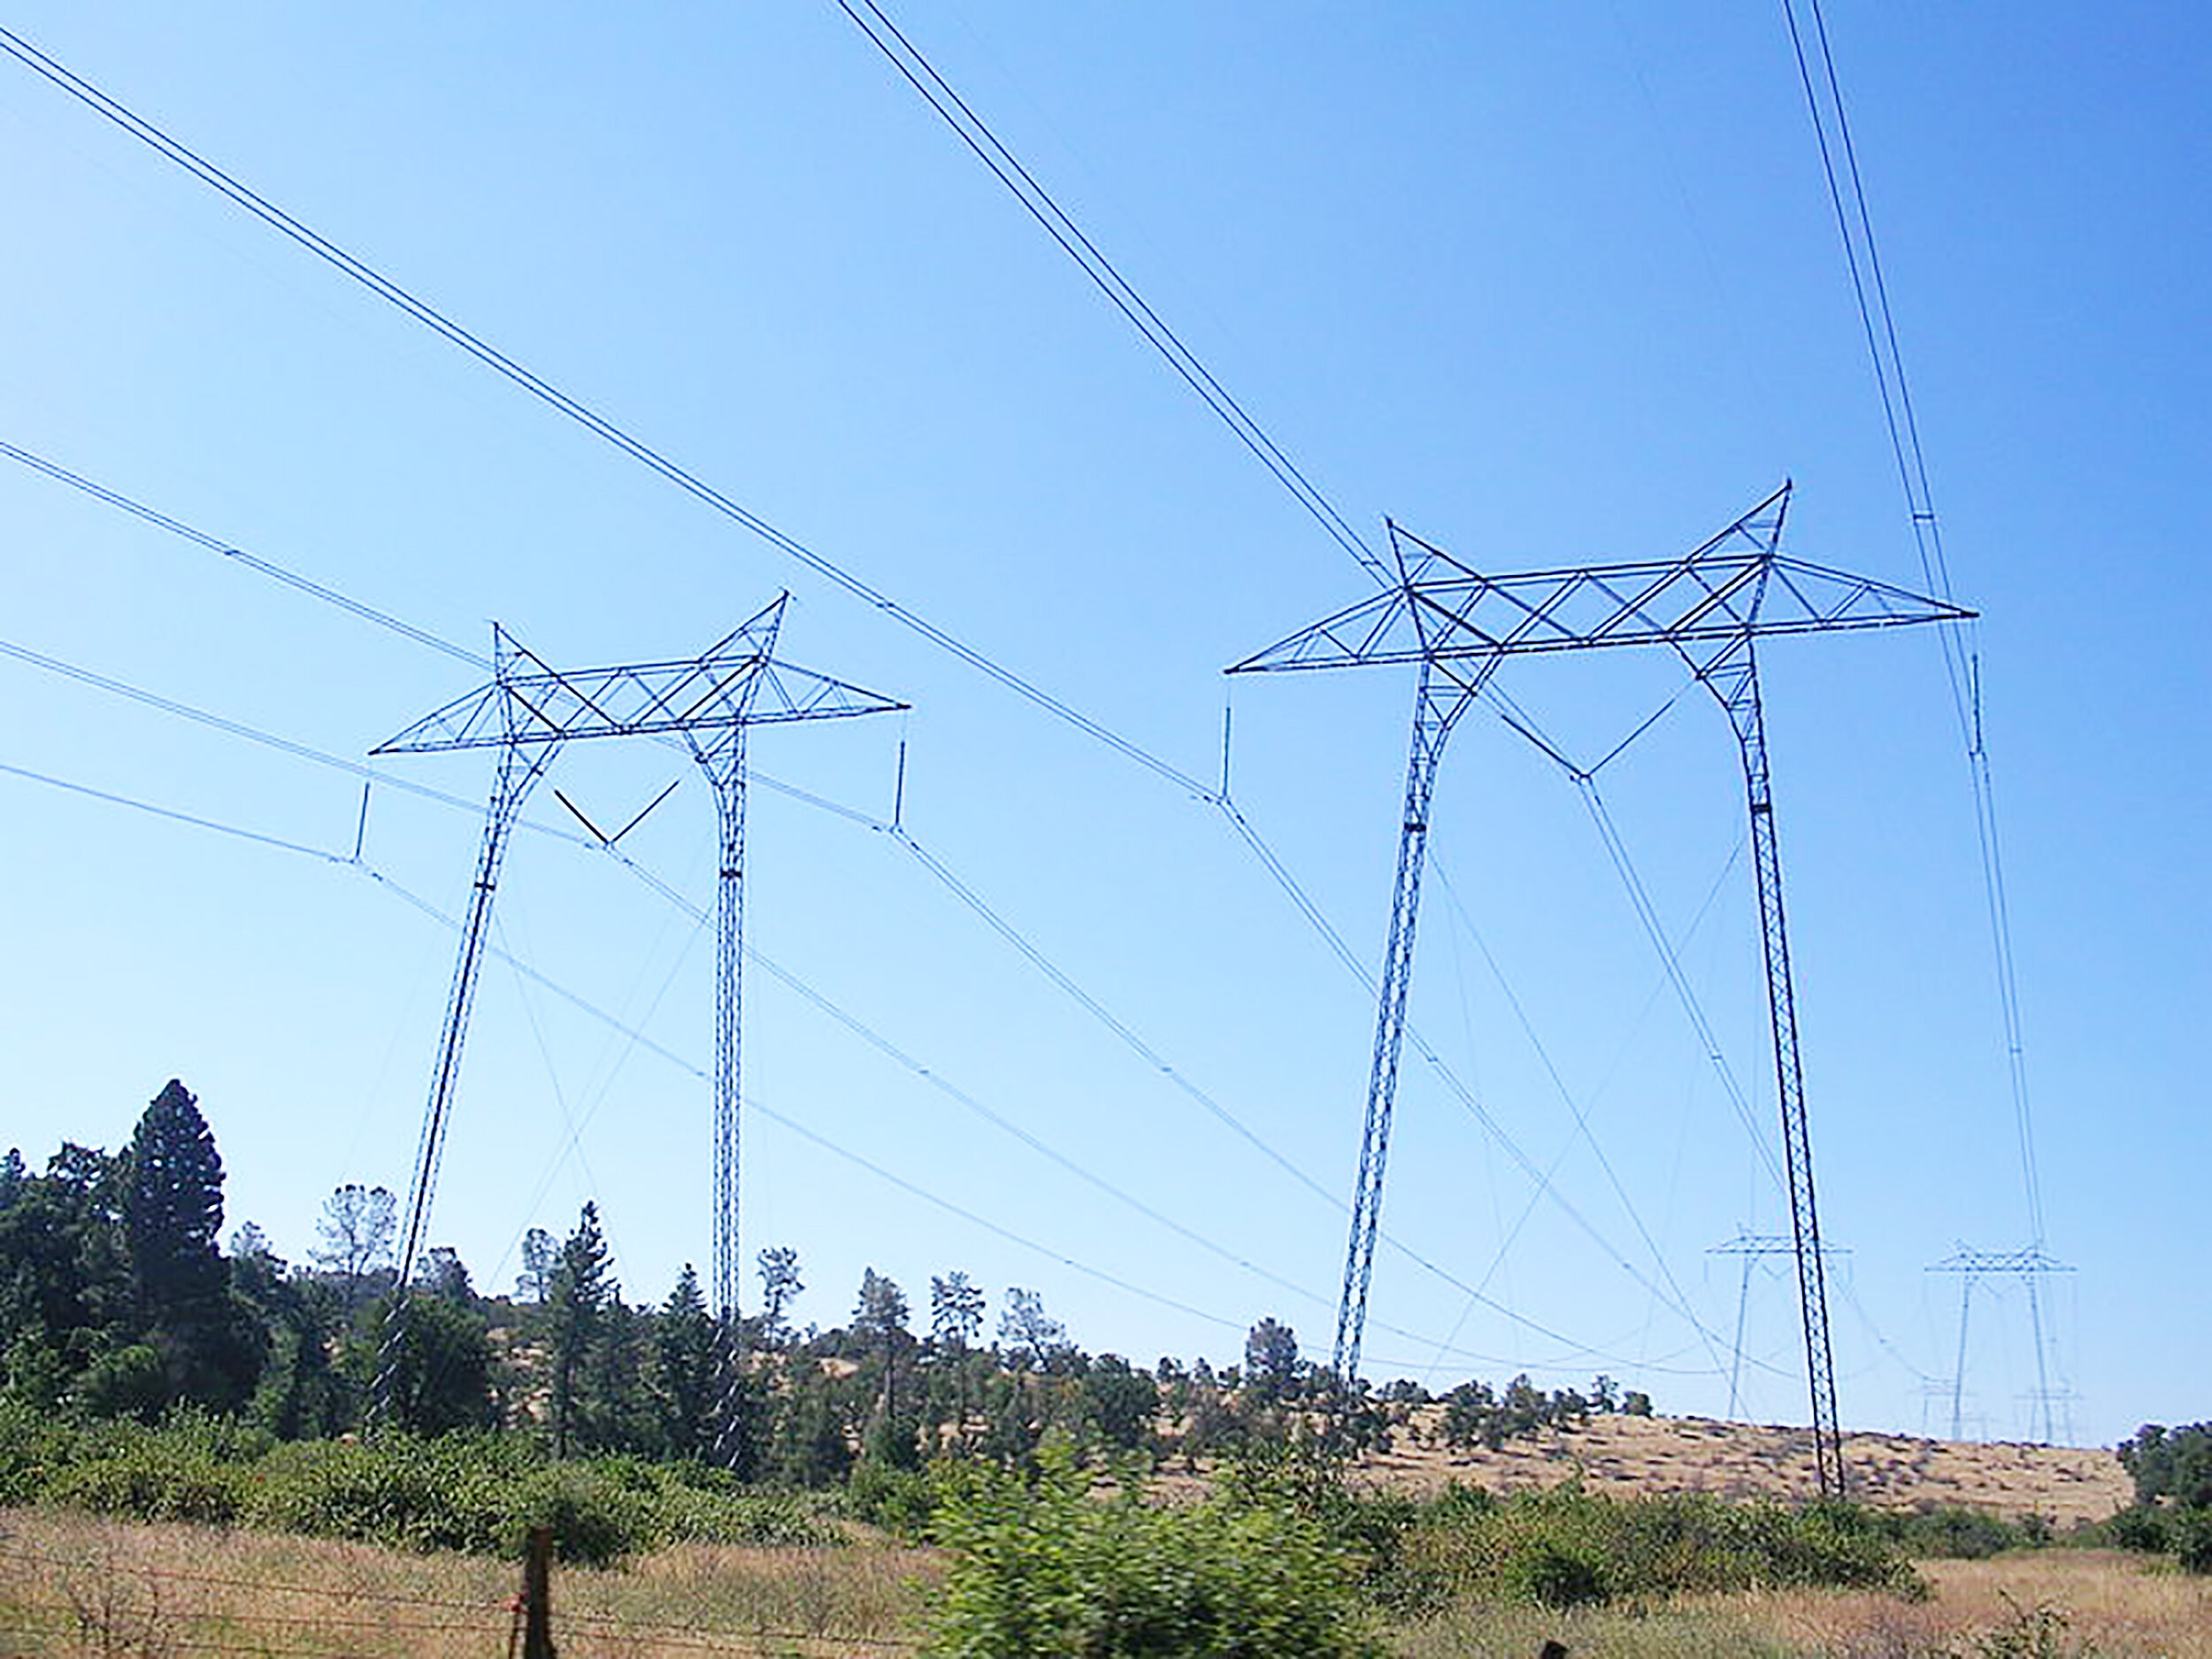 After Pacific Gas and Electric Company partly caused the Camp Fire, they decided to shut off their power lines (pictured above) at random times to cut down the threat of another fire. Californians are devestated by these blackouts that occur without warning (Armen van buuren/wikimedia).